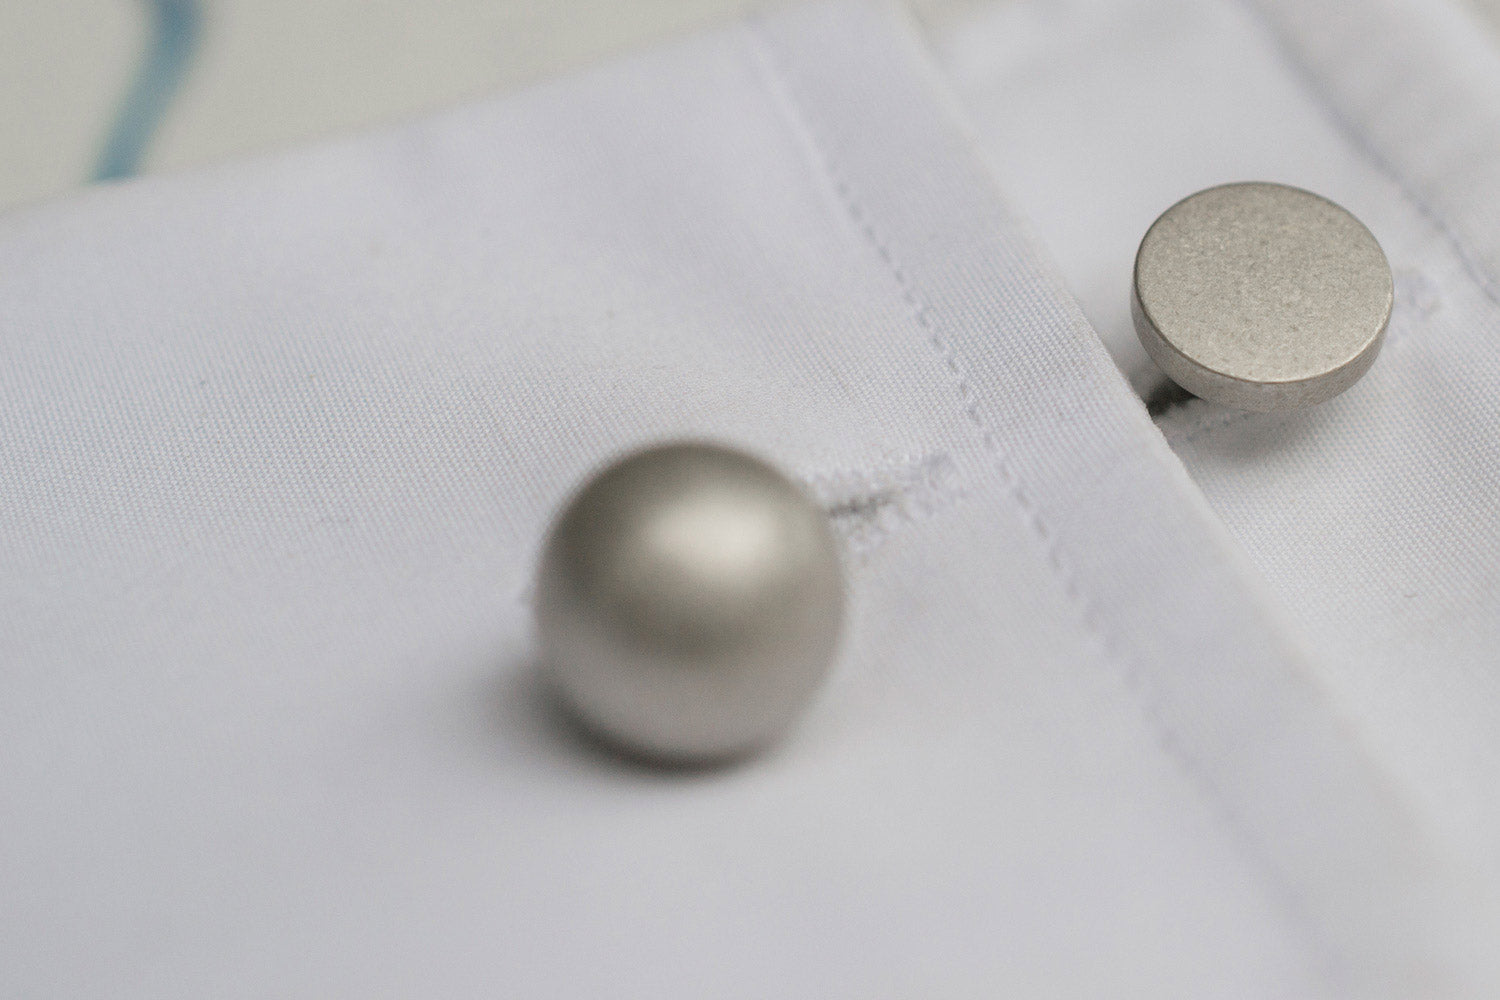 grafton reversible silver cufflinks | close-up